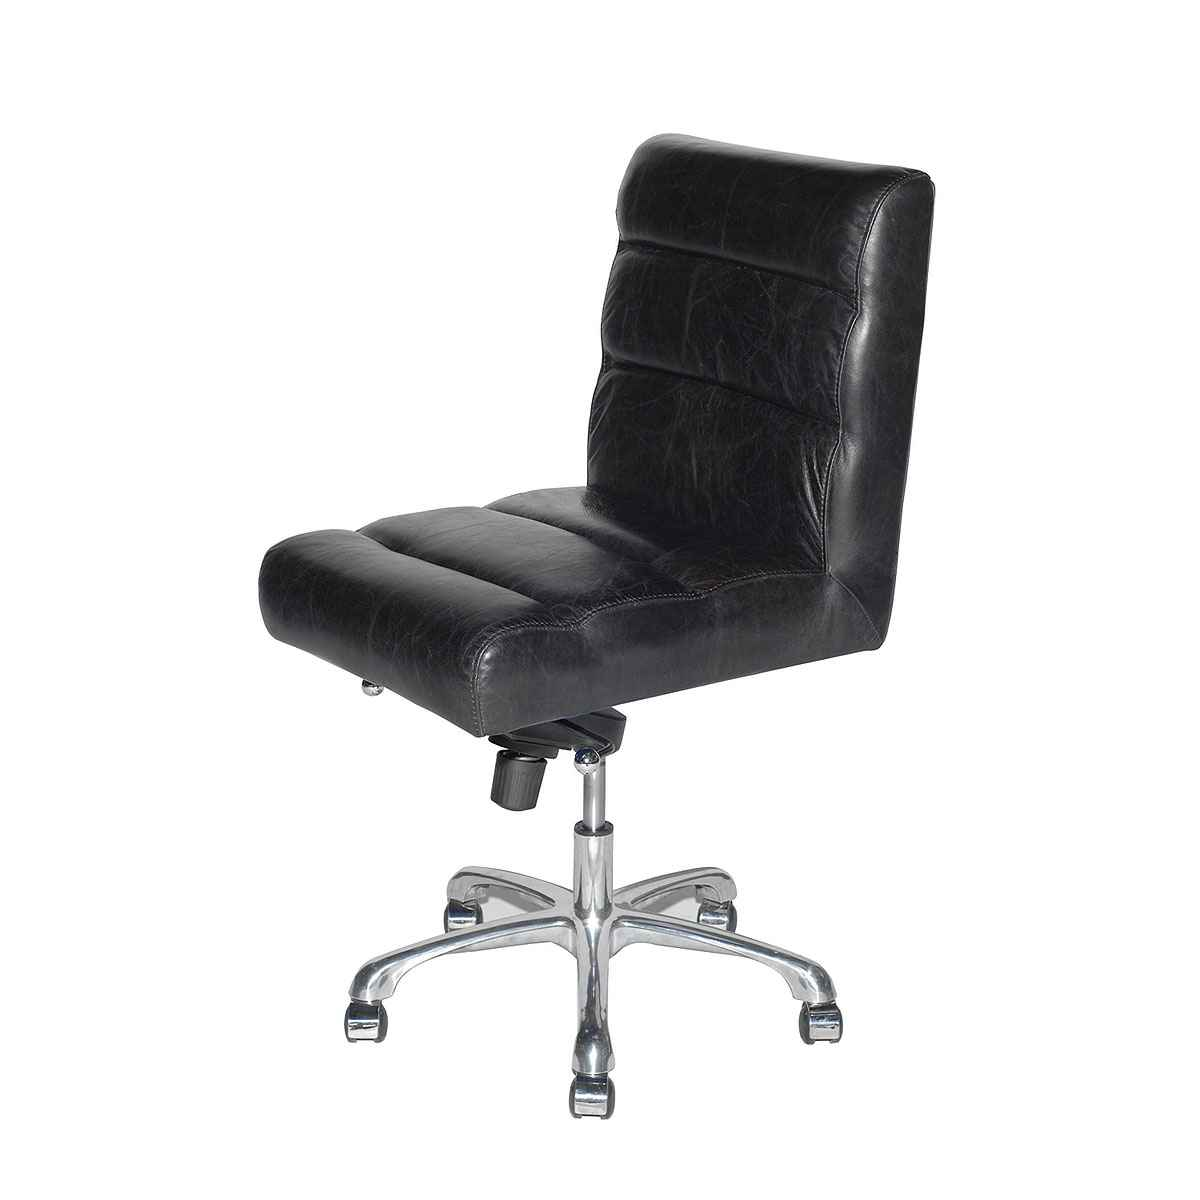 Stinger Armless Top Grain Leather Desk Chair in Black